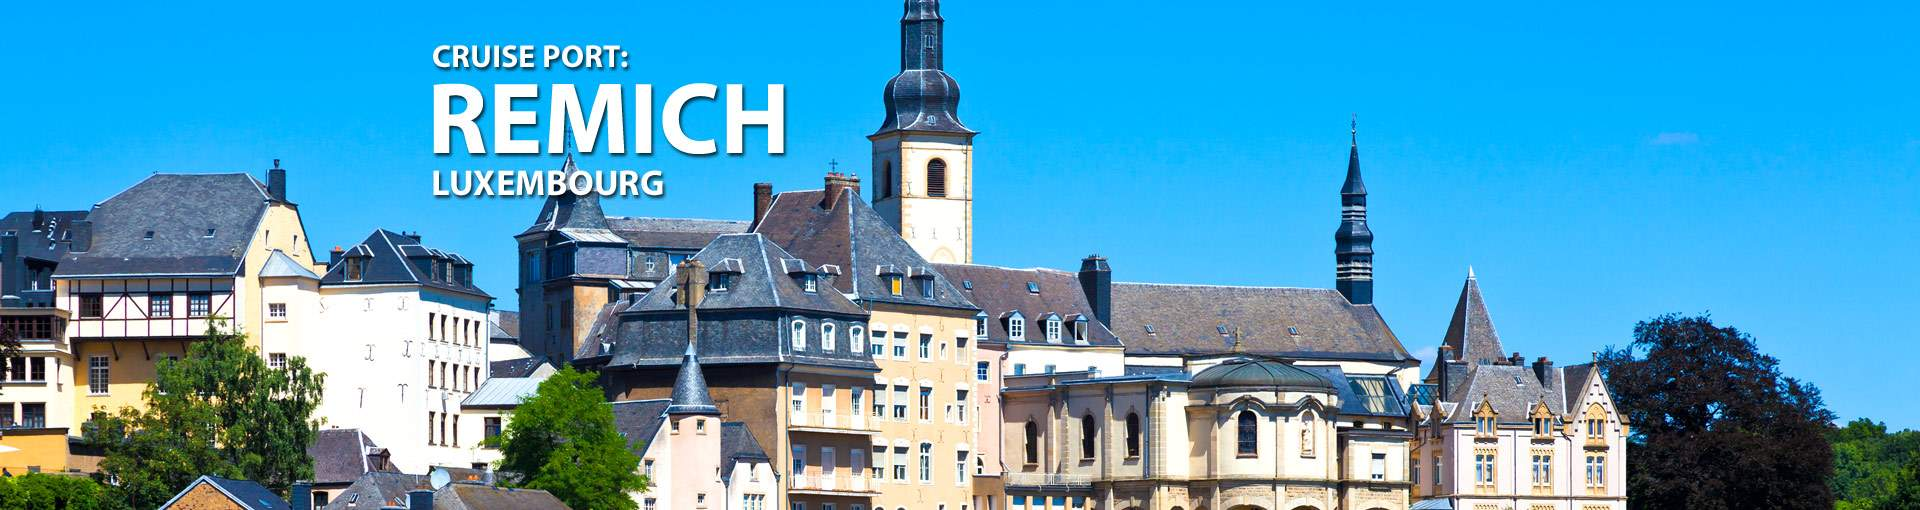 Cruises from Remich, Luxembourg